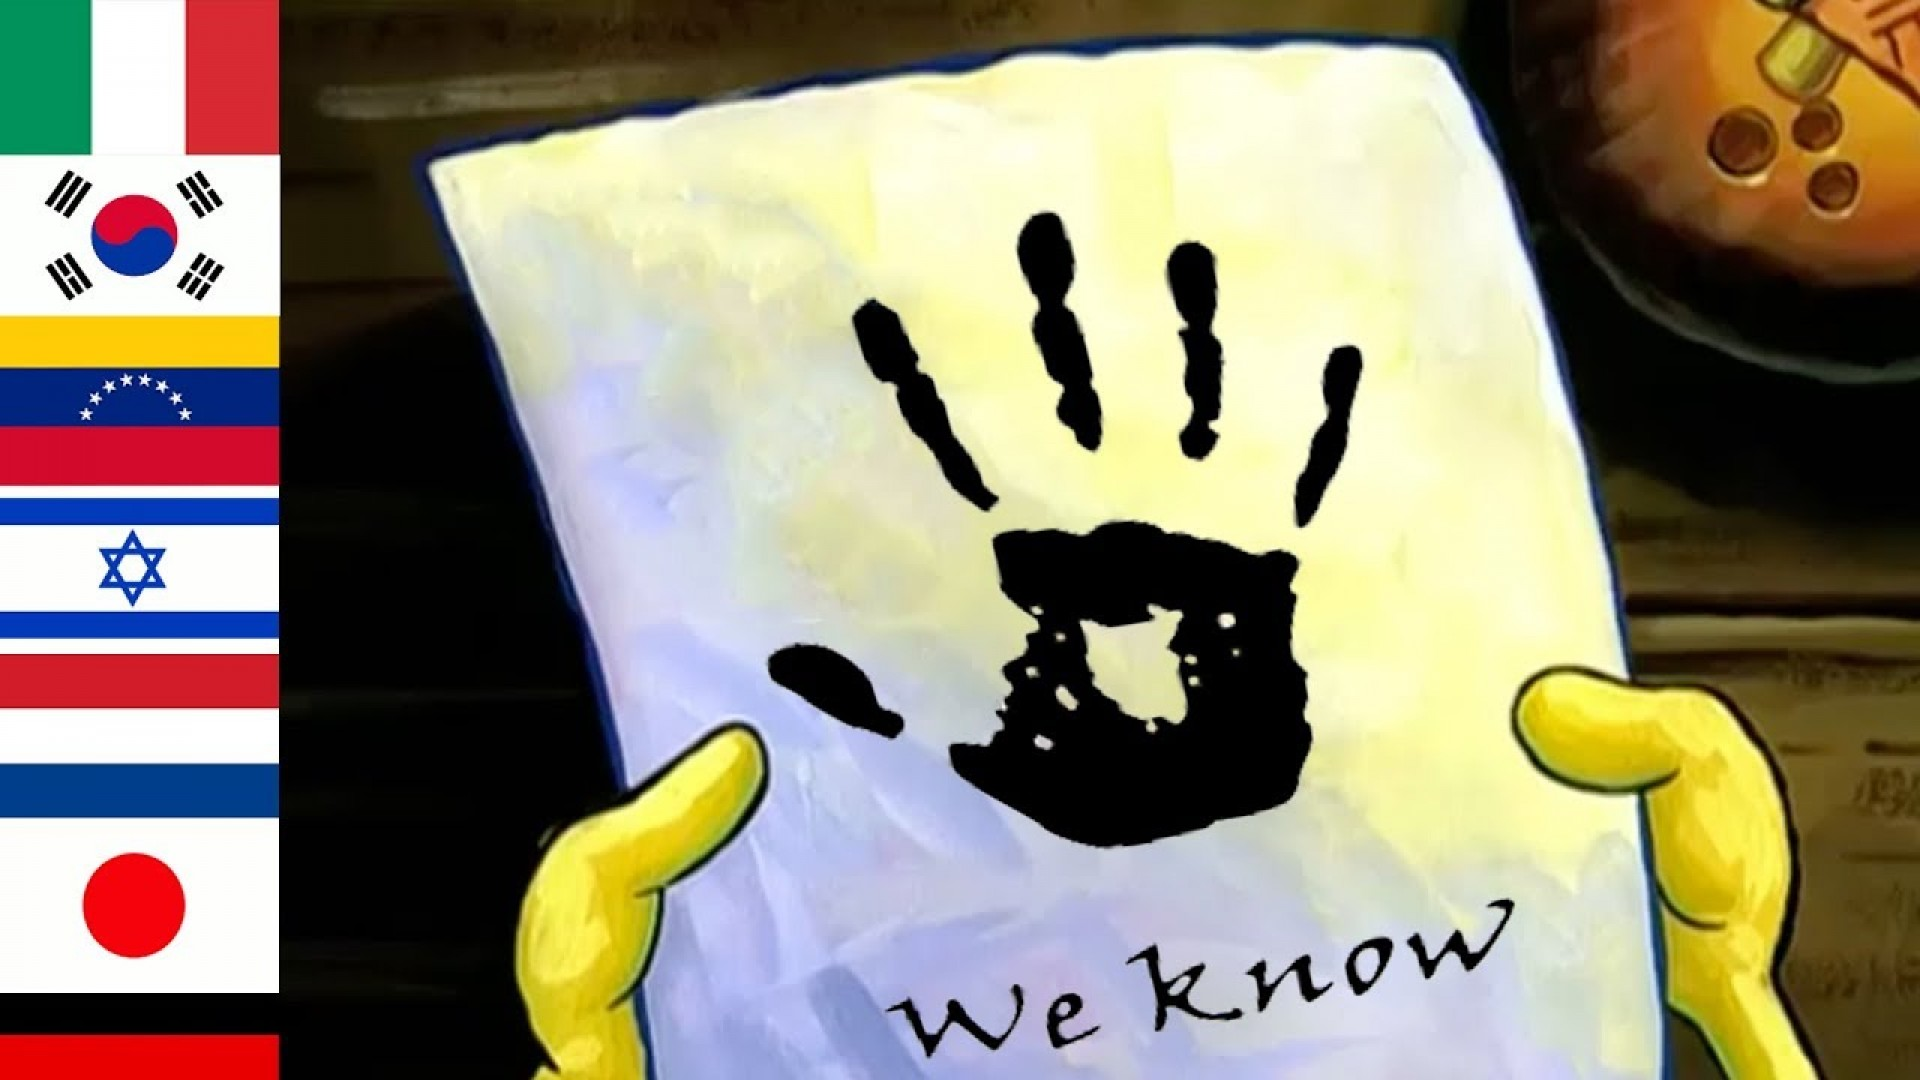 005 Maxresdefault Spongebob Essay Surprising Deleted Scene Writing Meme House 1920